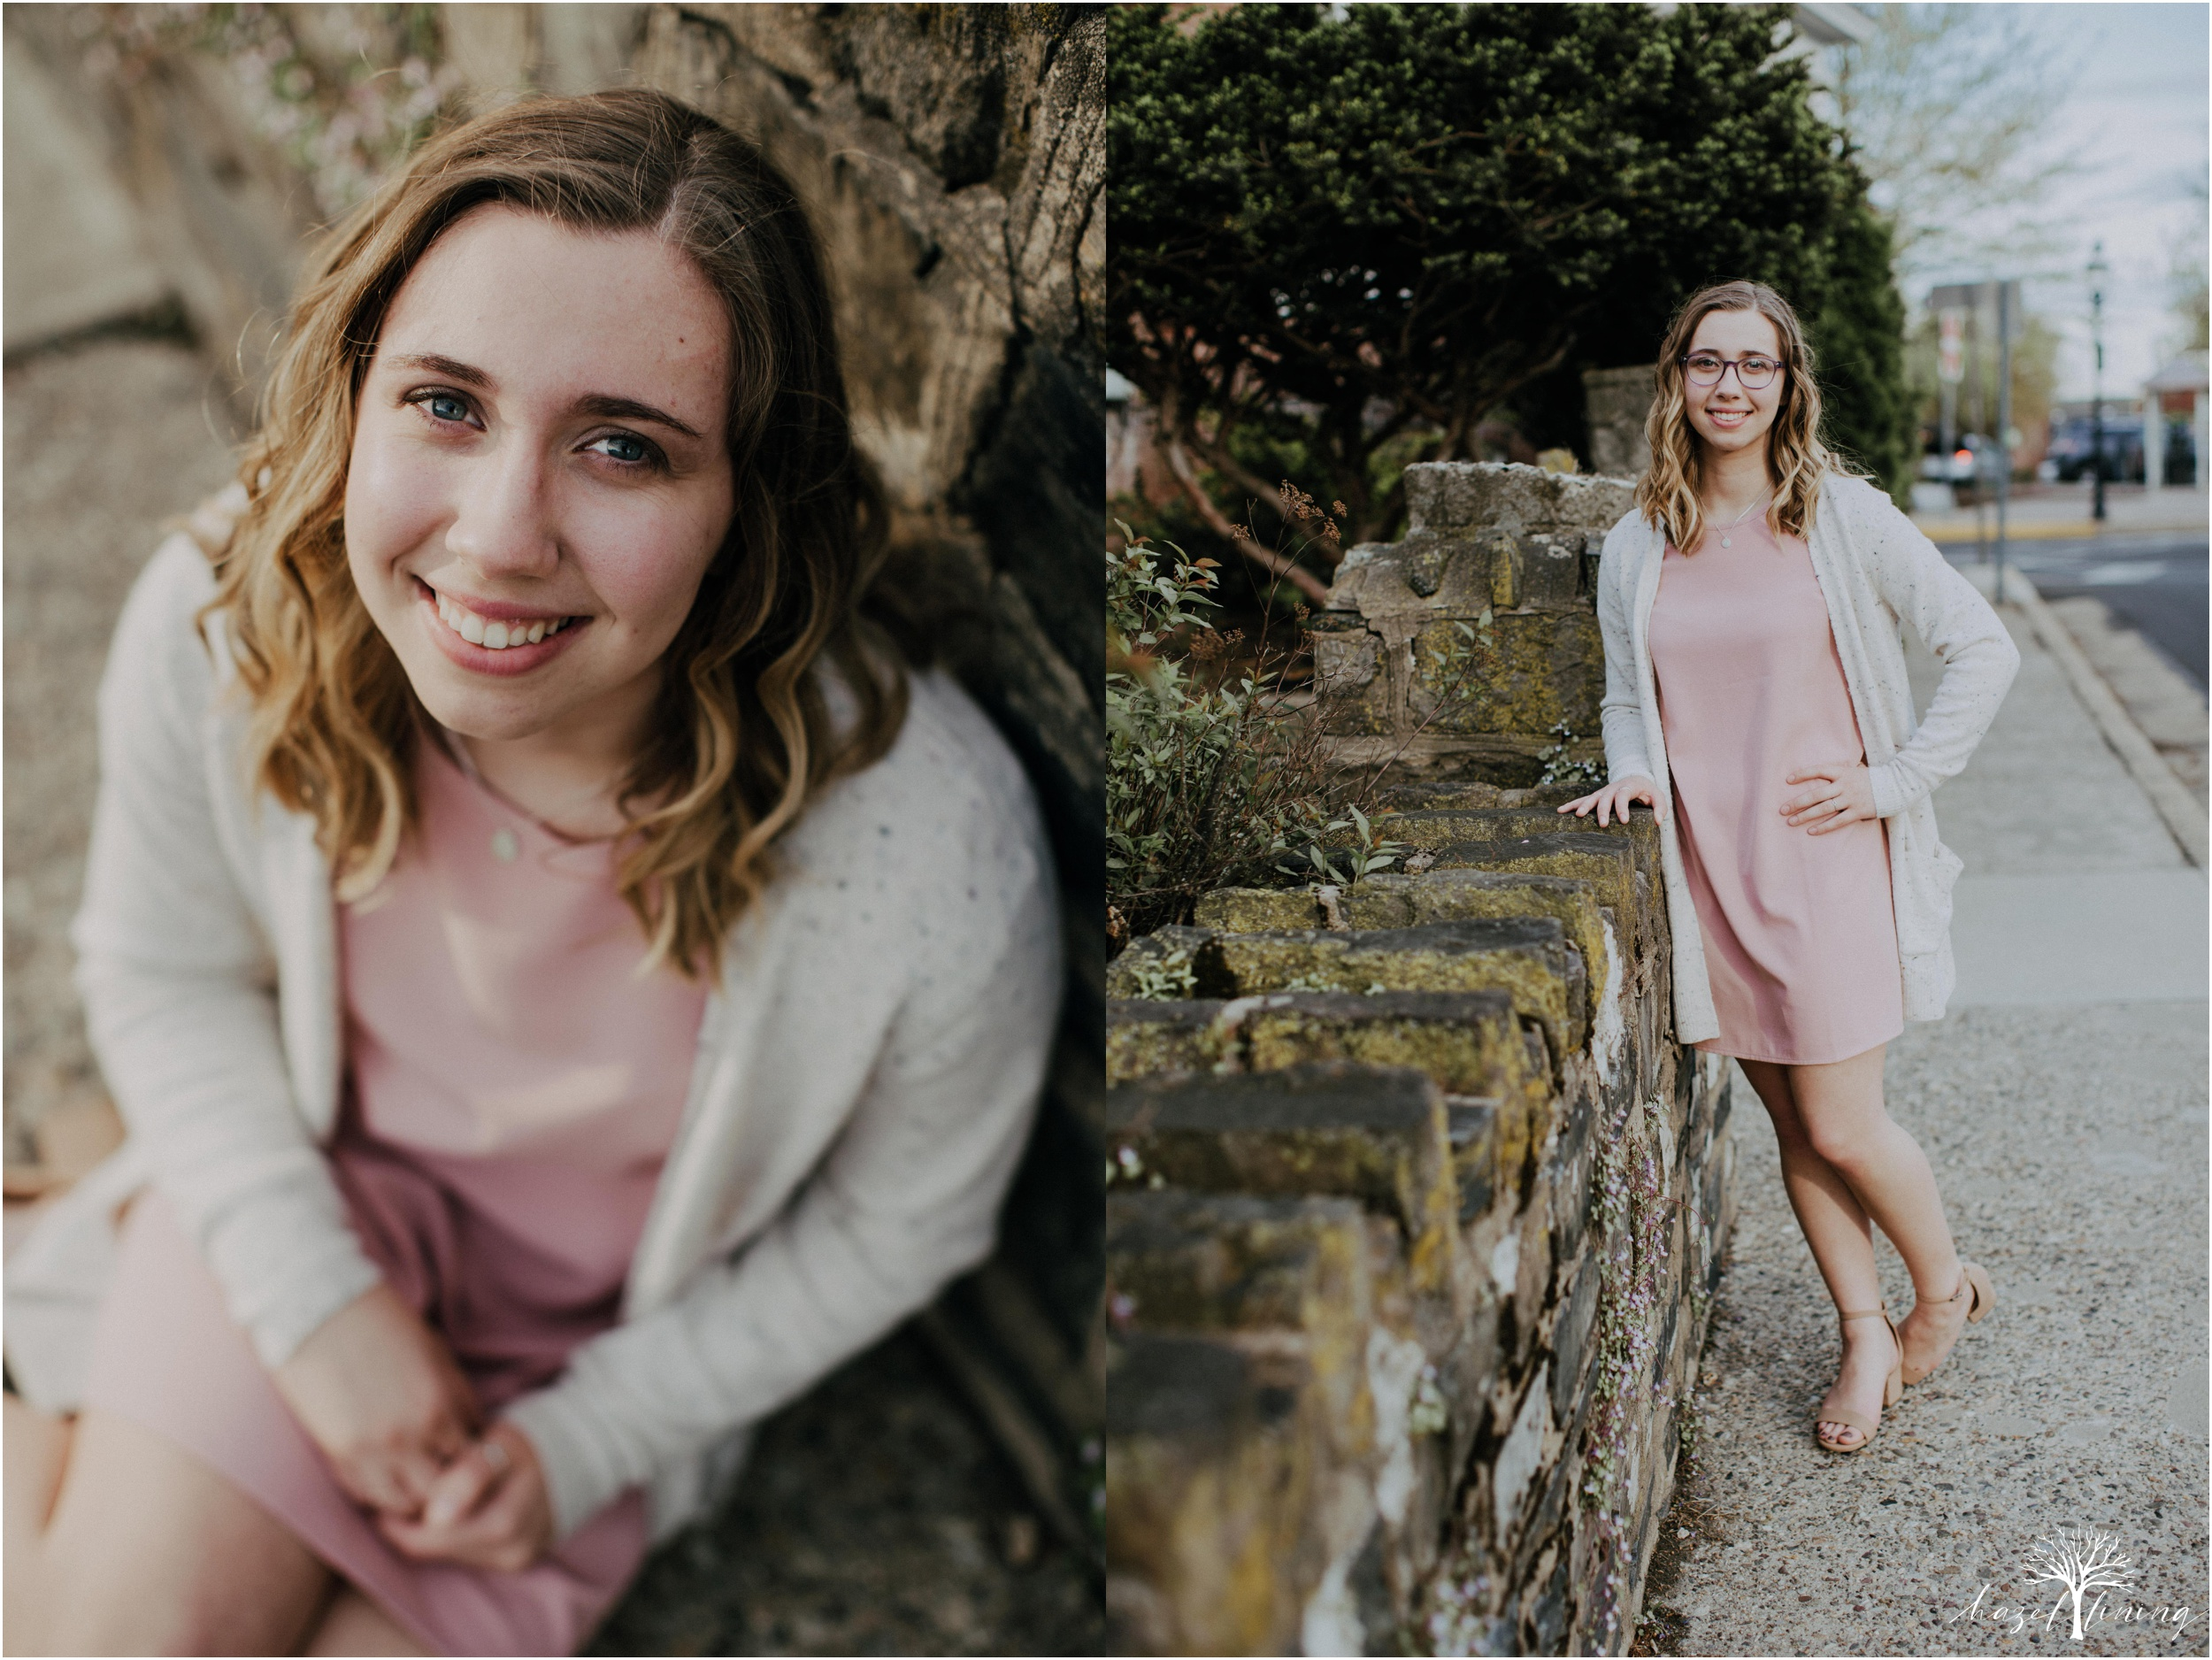 maddie-kiser-senior-portrait-session-doylestown-pennsylvania-spring-hazel-lining-photography-destination-elopement-wedding-engagement-photography-year-in-review_0015.jpg